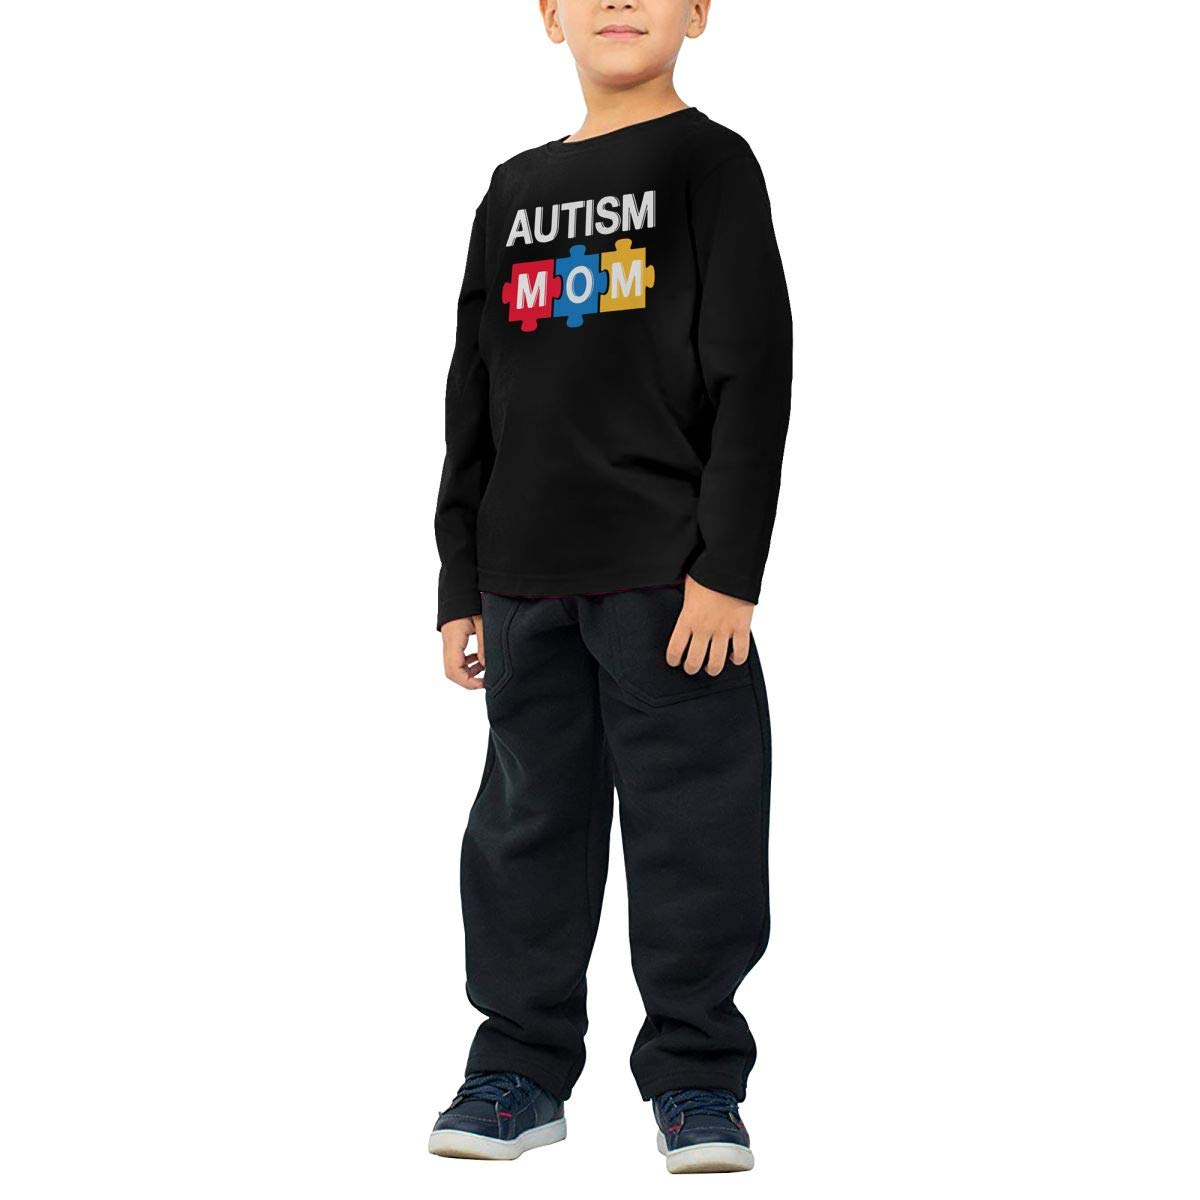 Fryhyu8 Toddler Kids Autism Mom Autism Awareness Printed Long Sleeve 100/% Cotton Infants T Shirts